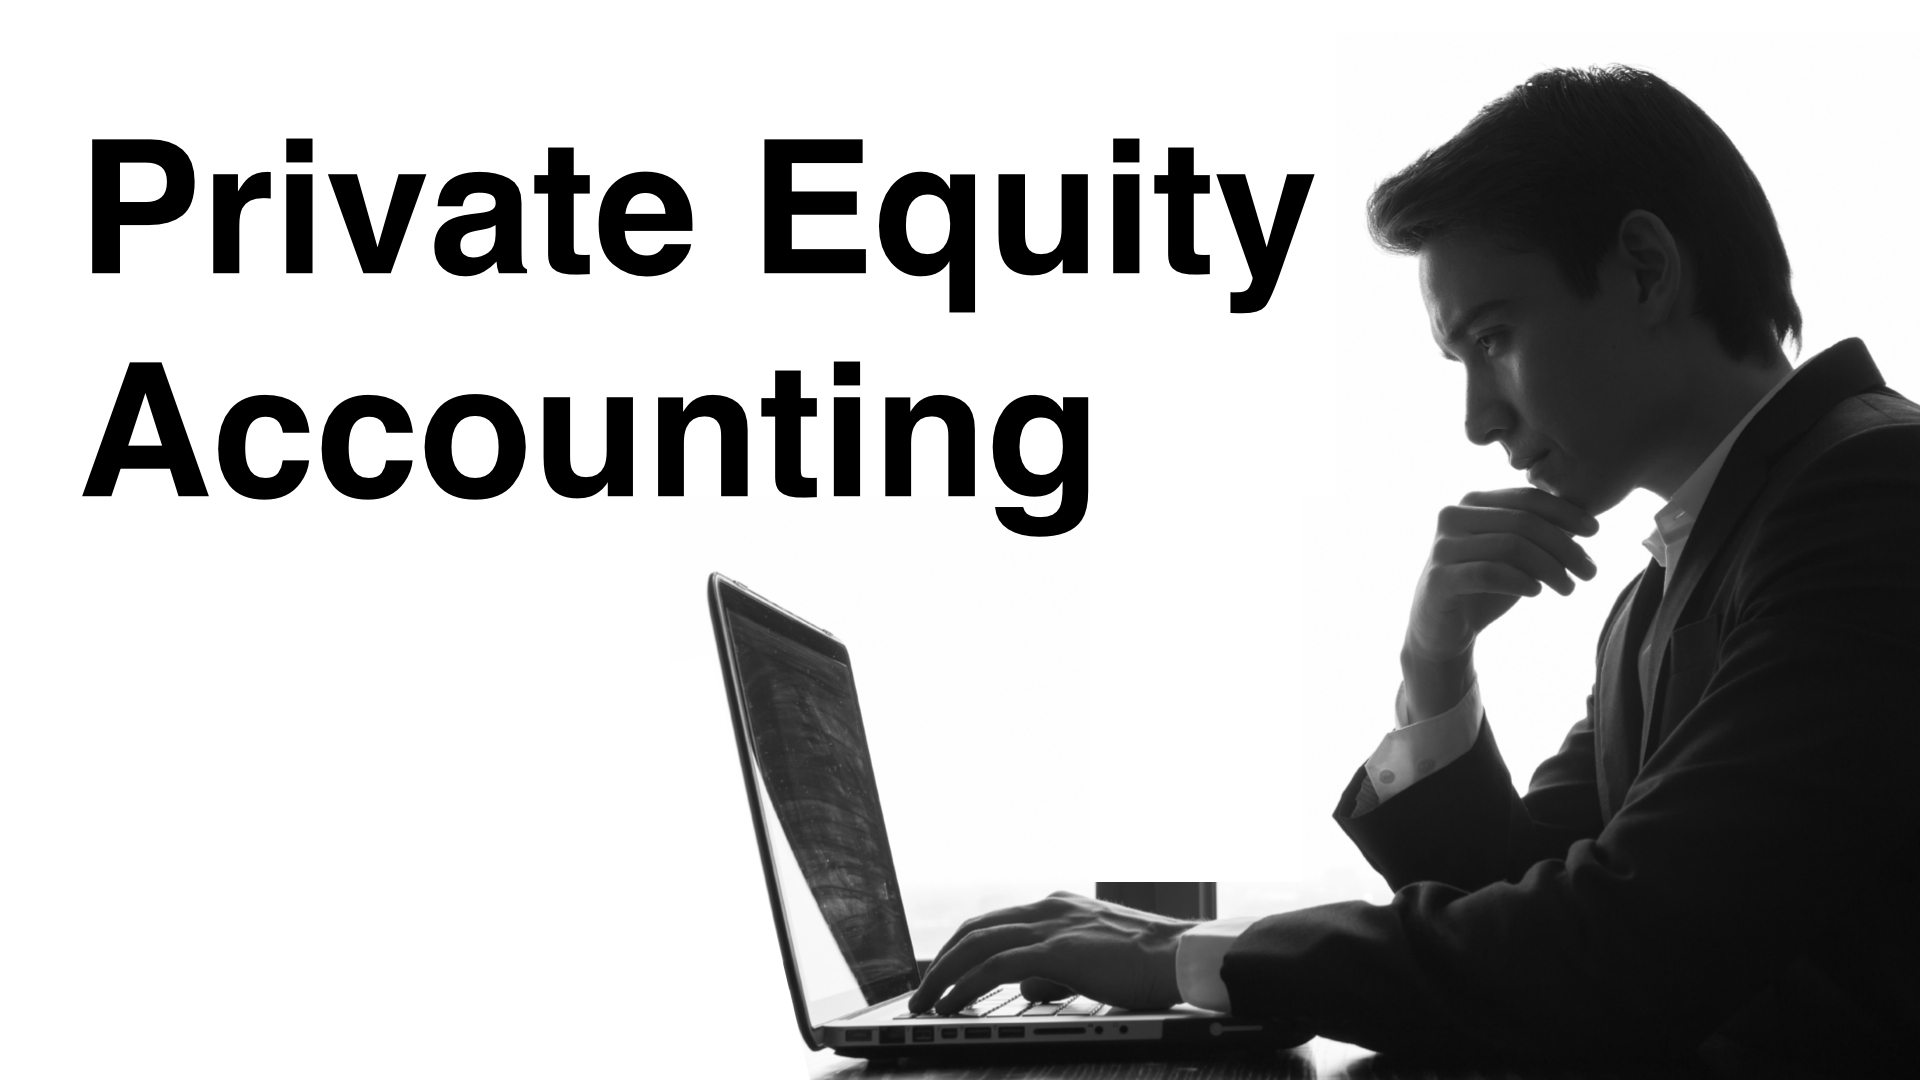 dating private equity guy Terra firma capital partners ltd (tfcp) is a uk-based private equity firm financier guy hands founded the firm in 2002 through the spin-off of nomura principal finance groupthe firm, which traces its roots to the formation of its predecessor in 1994, has invested over €14 billion since inception.